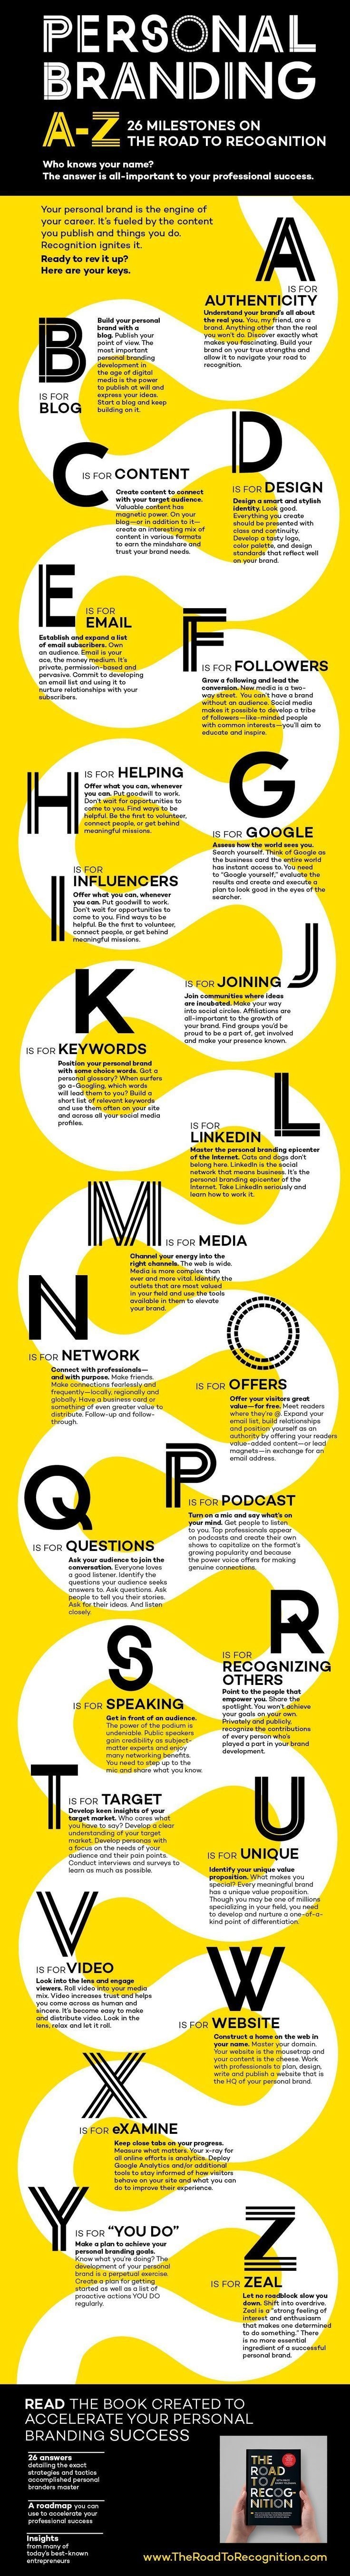 Social media infographic – Business infographic : An A to Z Guide to Personal Branding